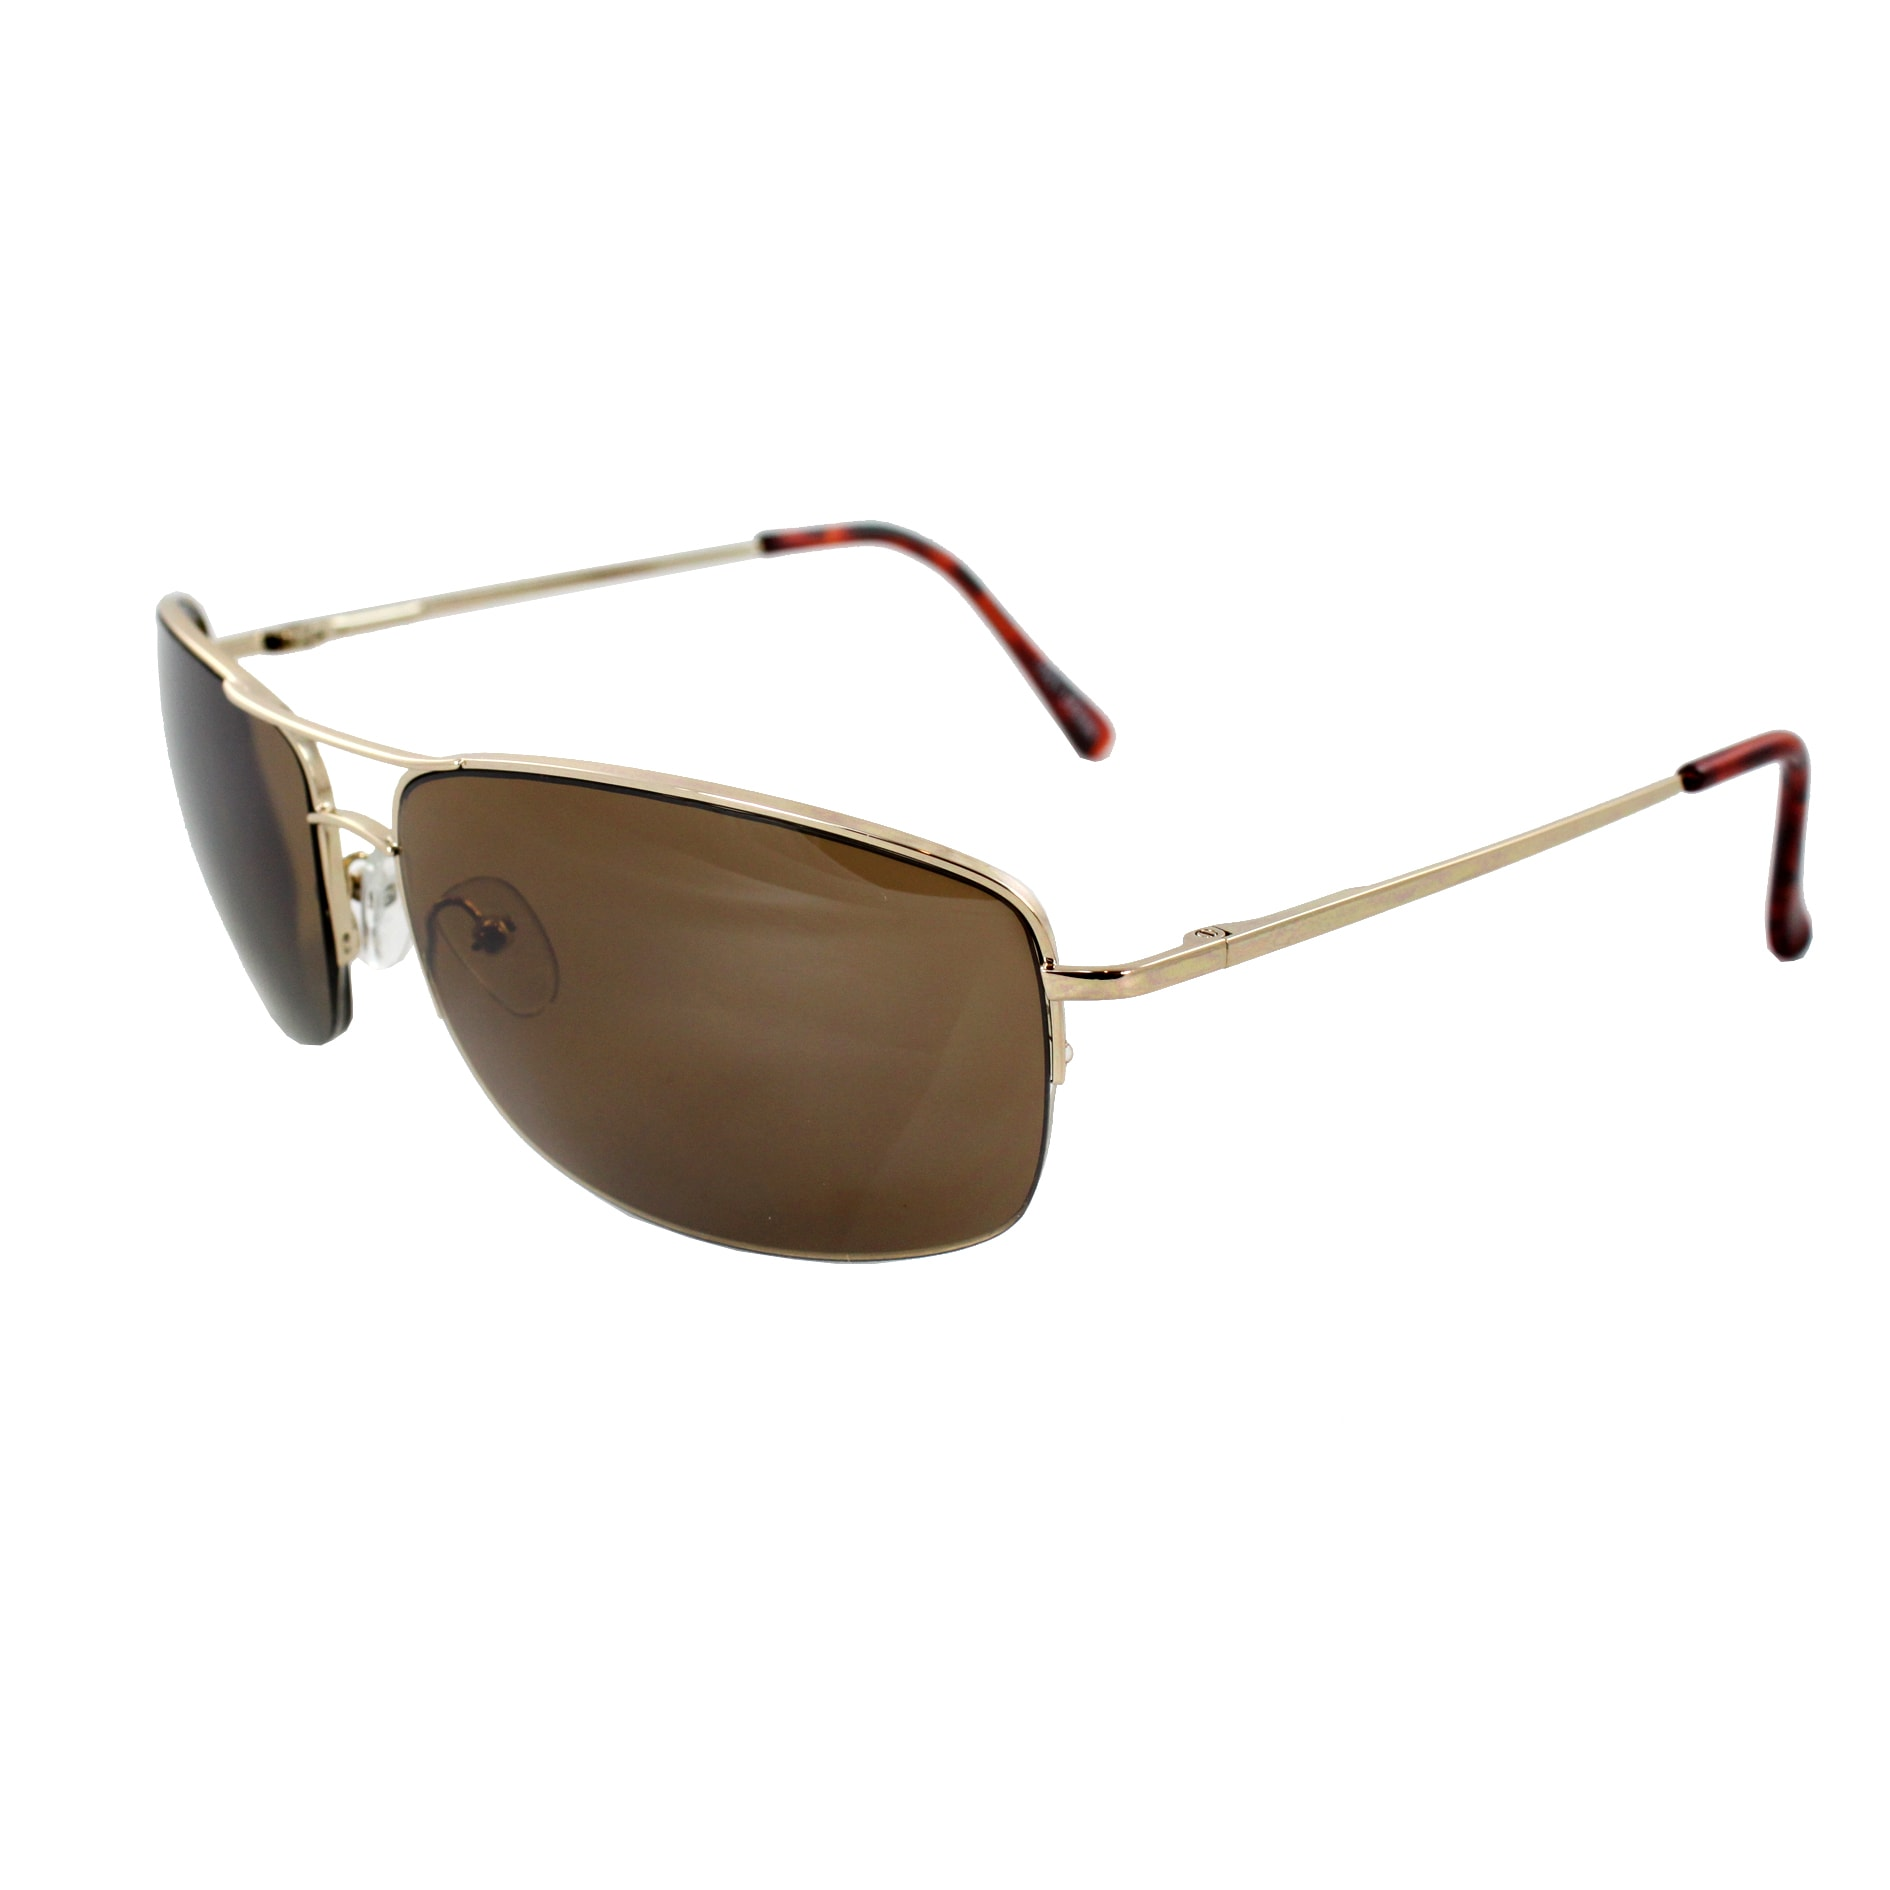 d28f1f1d17 Shop Semi-Rimless Fashion Sunglasses Gold Frame with Brown Lenses for Women  and Men - Free Shipping On Orders Over  45 - Overstock - 6724975